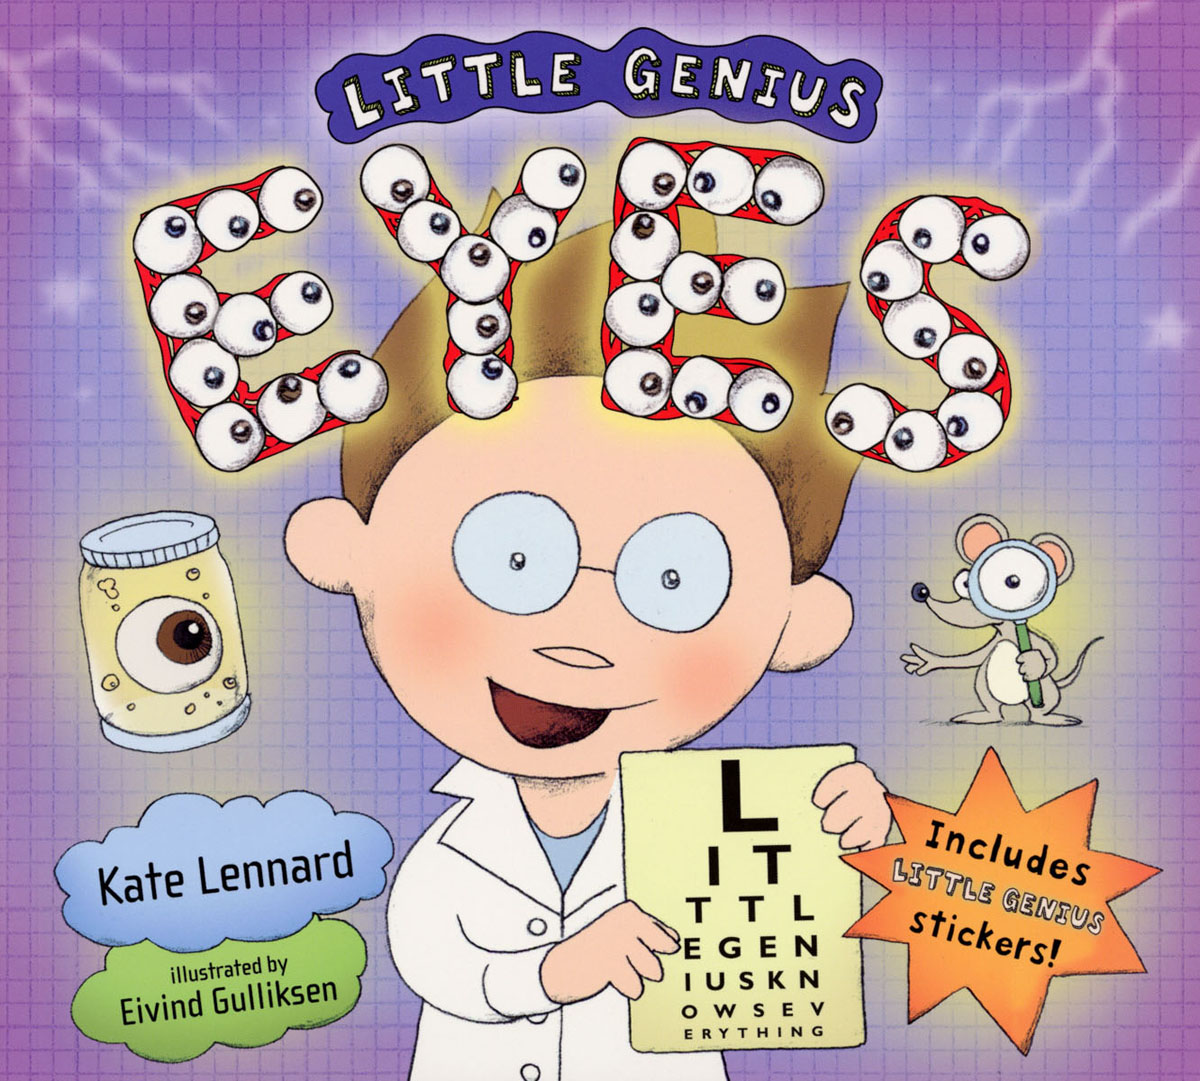 Little Genius: Eyes